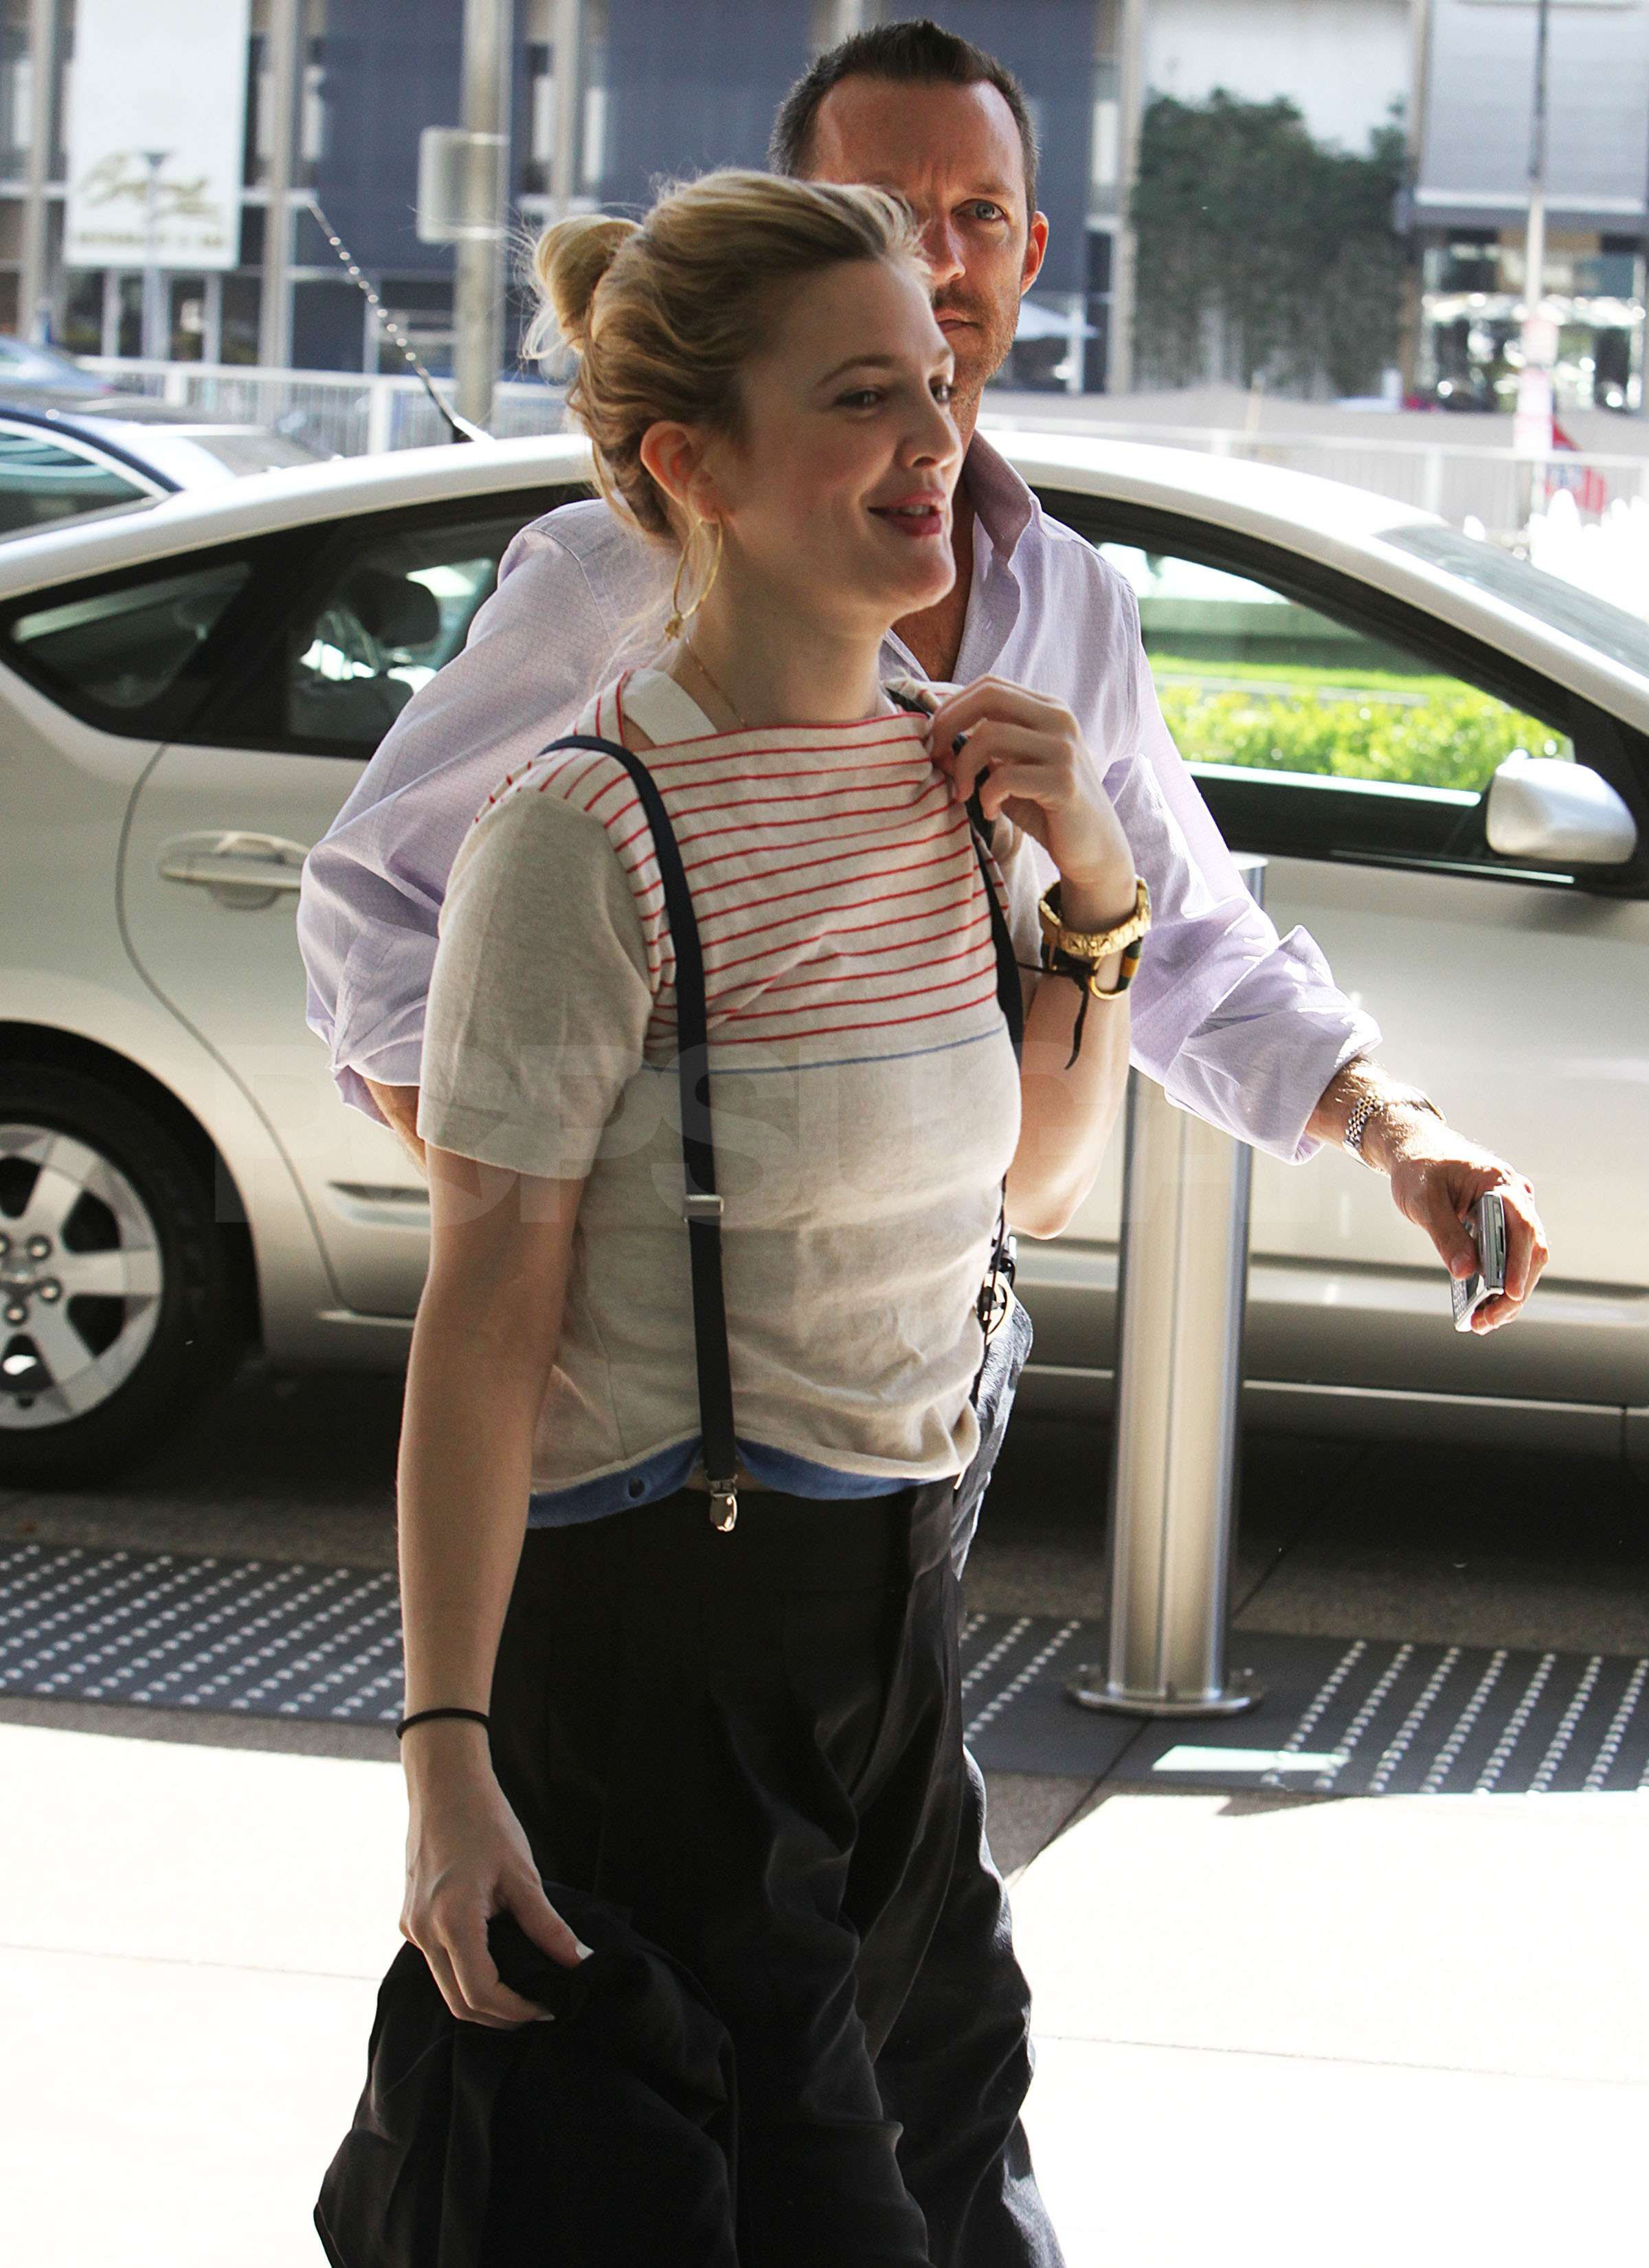 Drew Barrymore changed her pants for men 09/04/2010 30